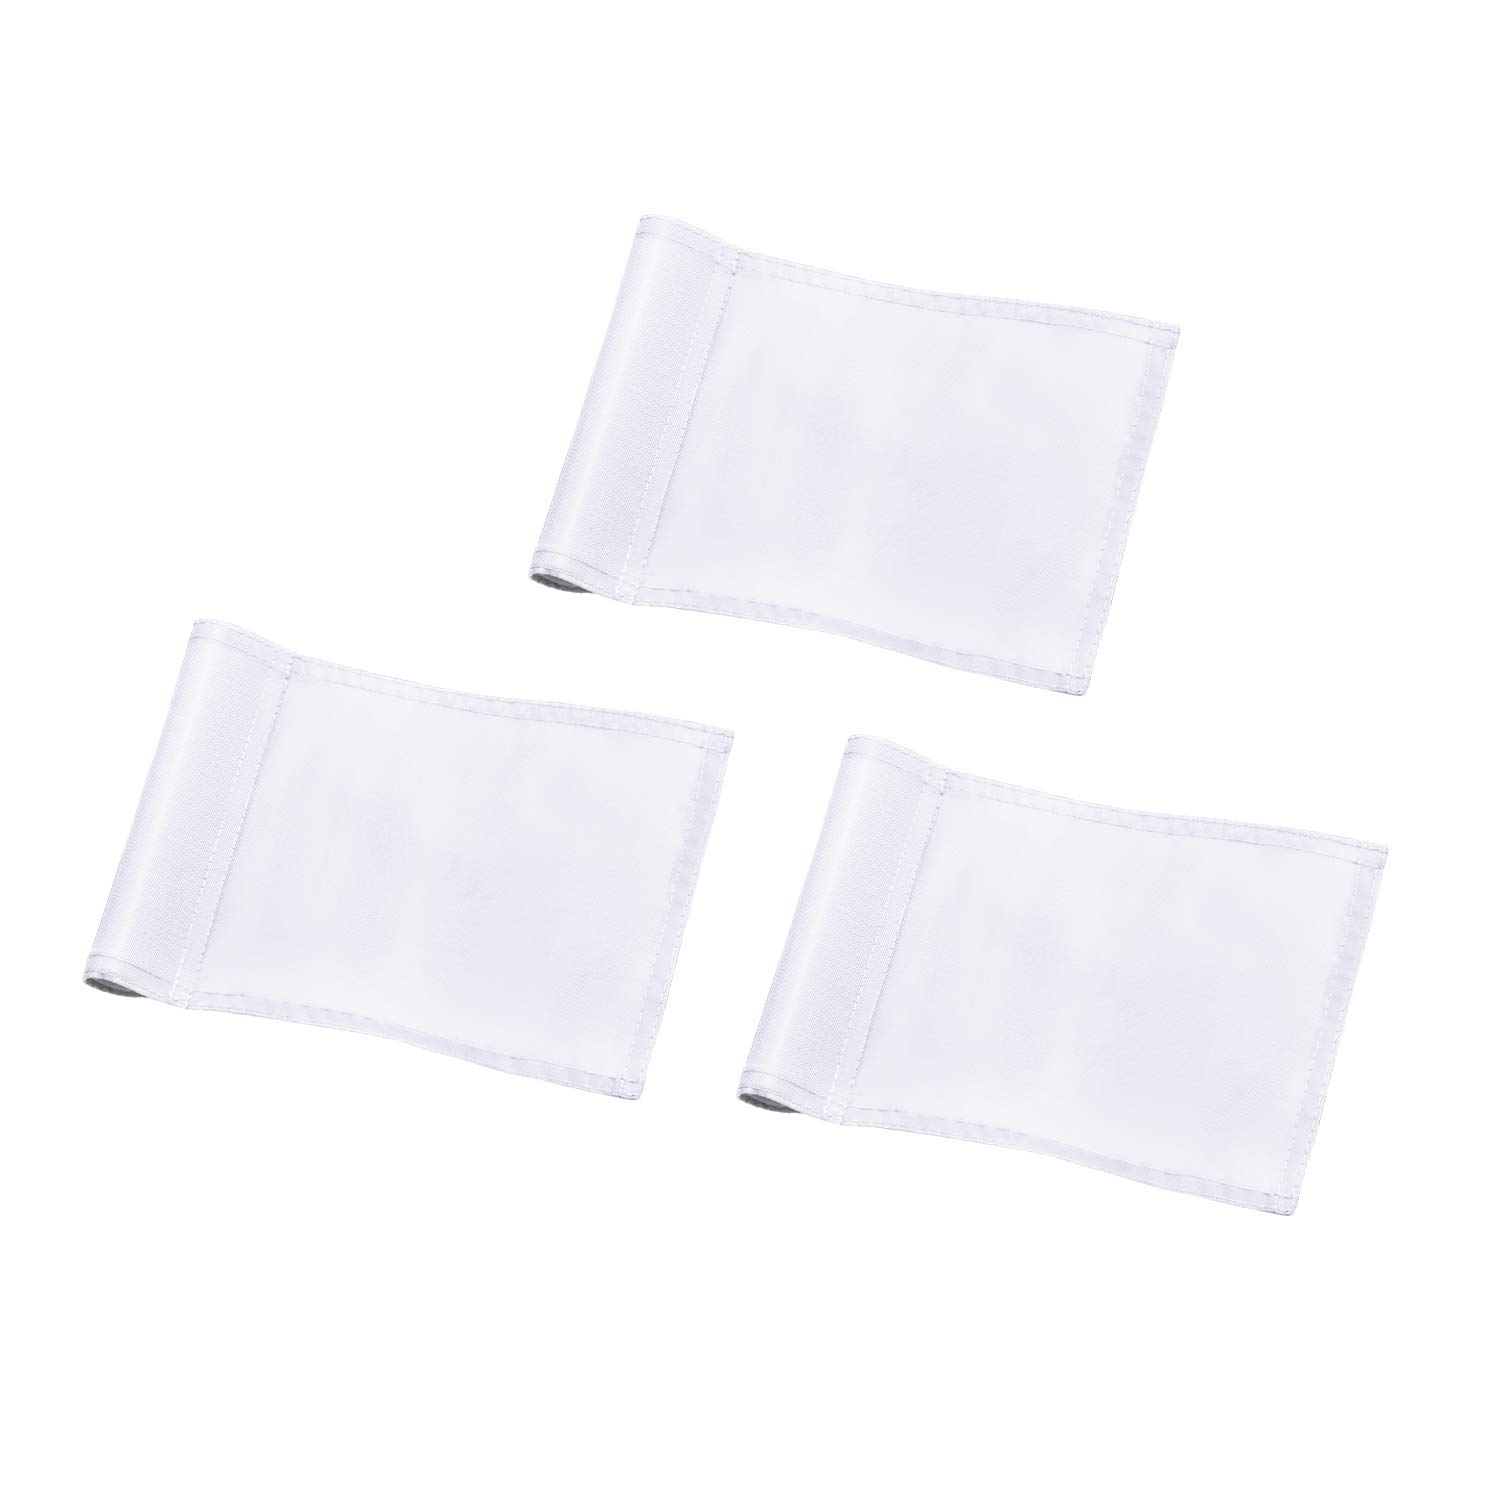 KINGTOP Solid Golf Flag with Plastic Insert, Putting Green Flags for Yard, Indoor/Outdoor, Garden Pin Flags, 420D Premium Nylon Flag, 8'' L x 6'' H, White, 3-Pack by KINGTOP